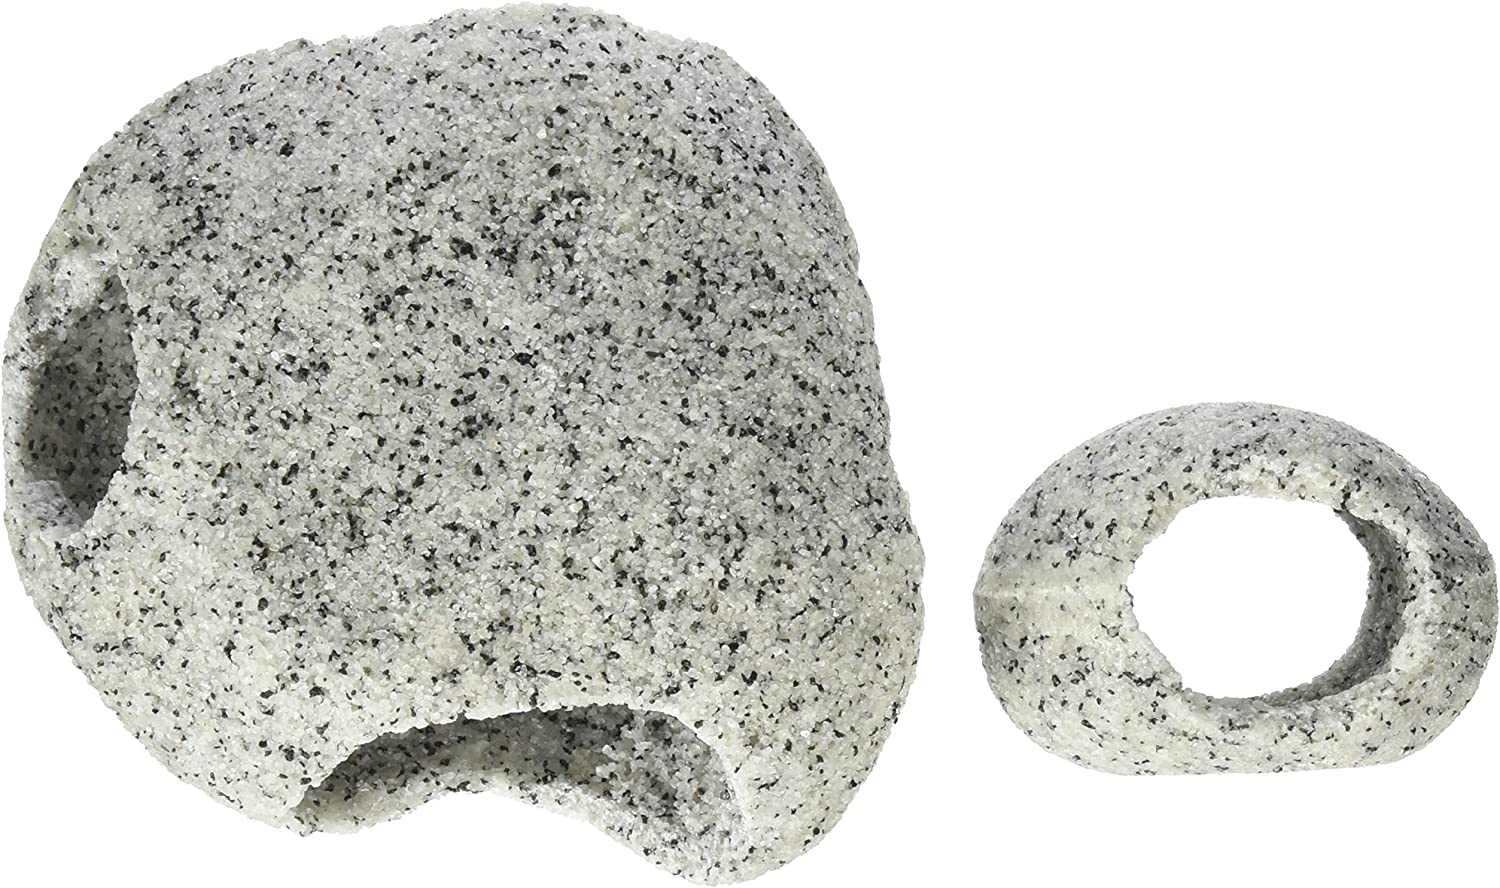 Penn-Plax Deco-Replicas Granite Aquarium Ornament Series – Realistic Stone Appearance – Safe for Freshwater and Saltwater Tanks – Great for Territorial Fish